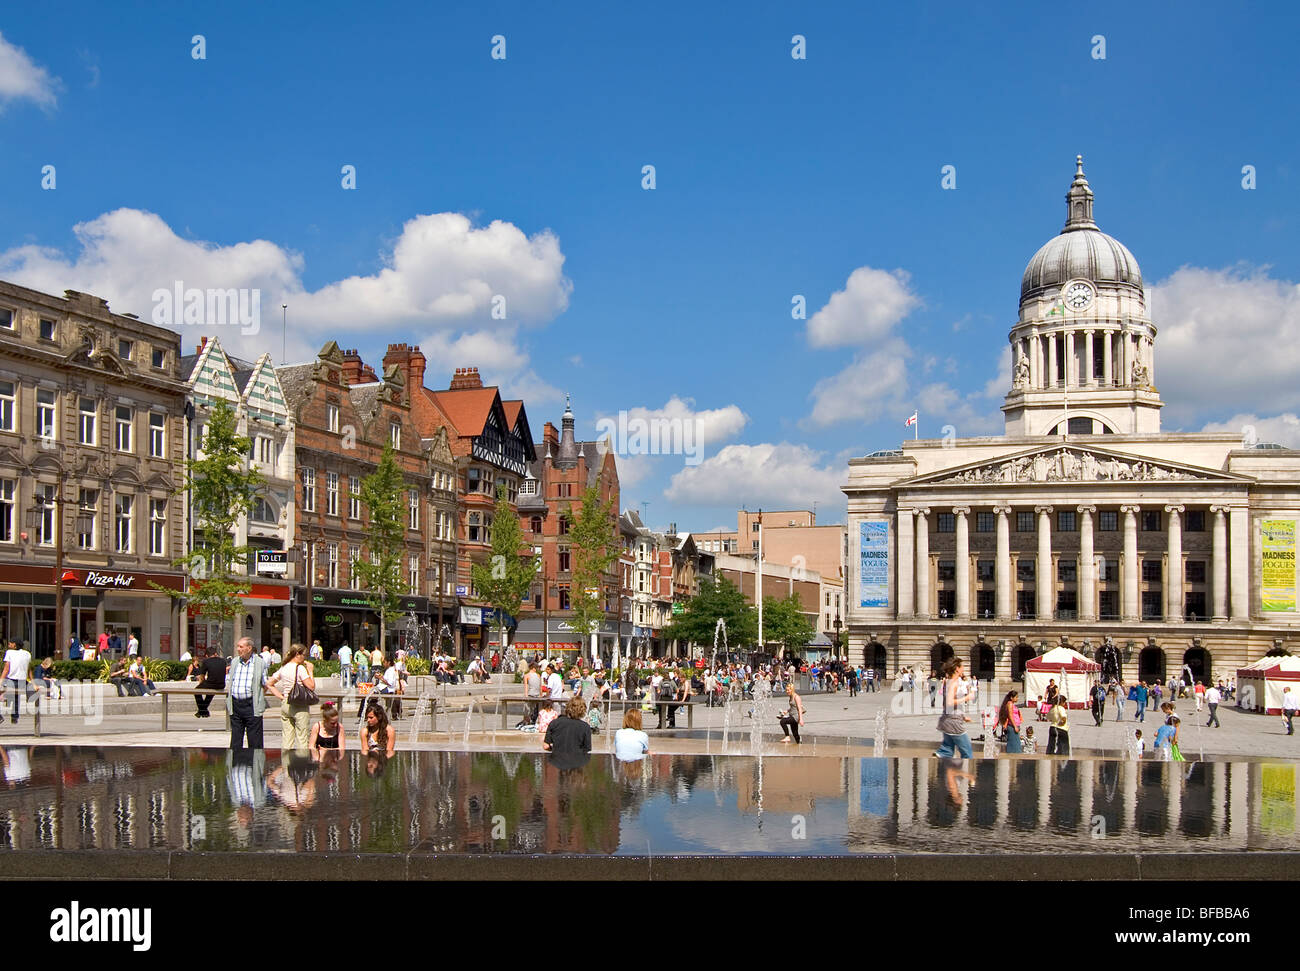 At the Old Market Square in Nottingham in England. - Stock Image